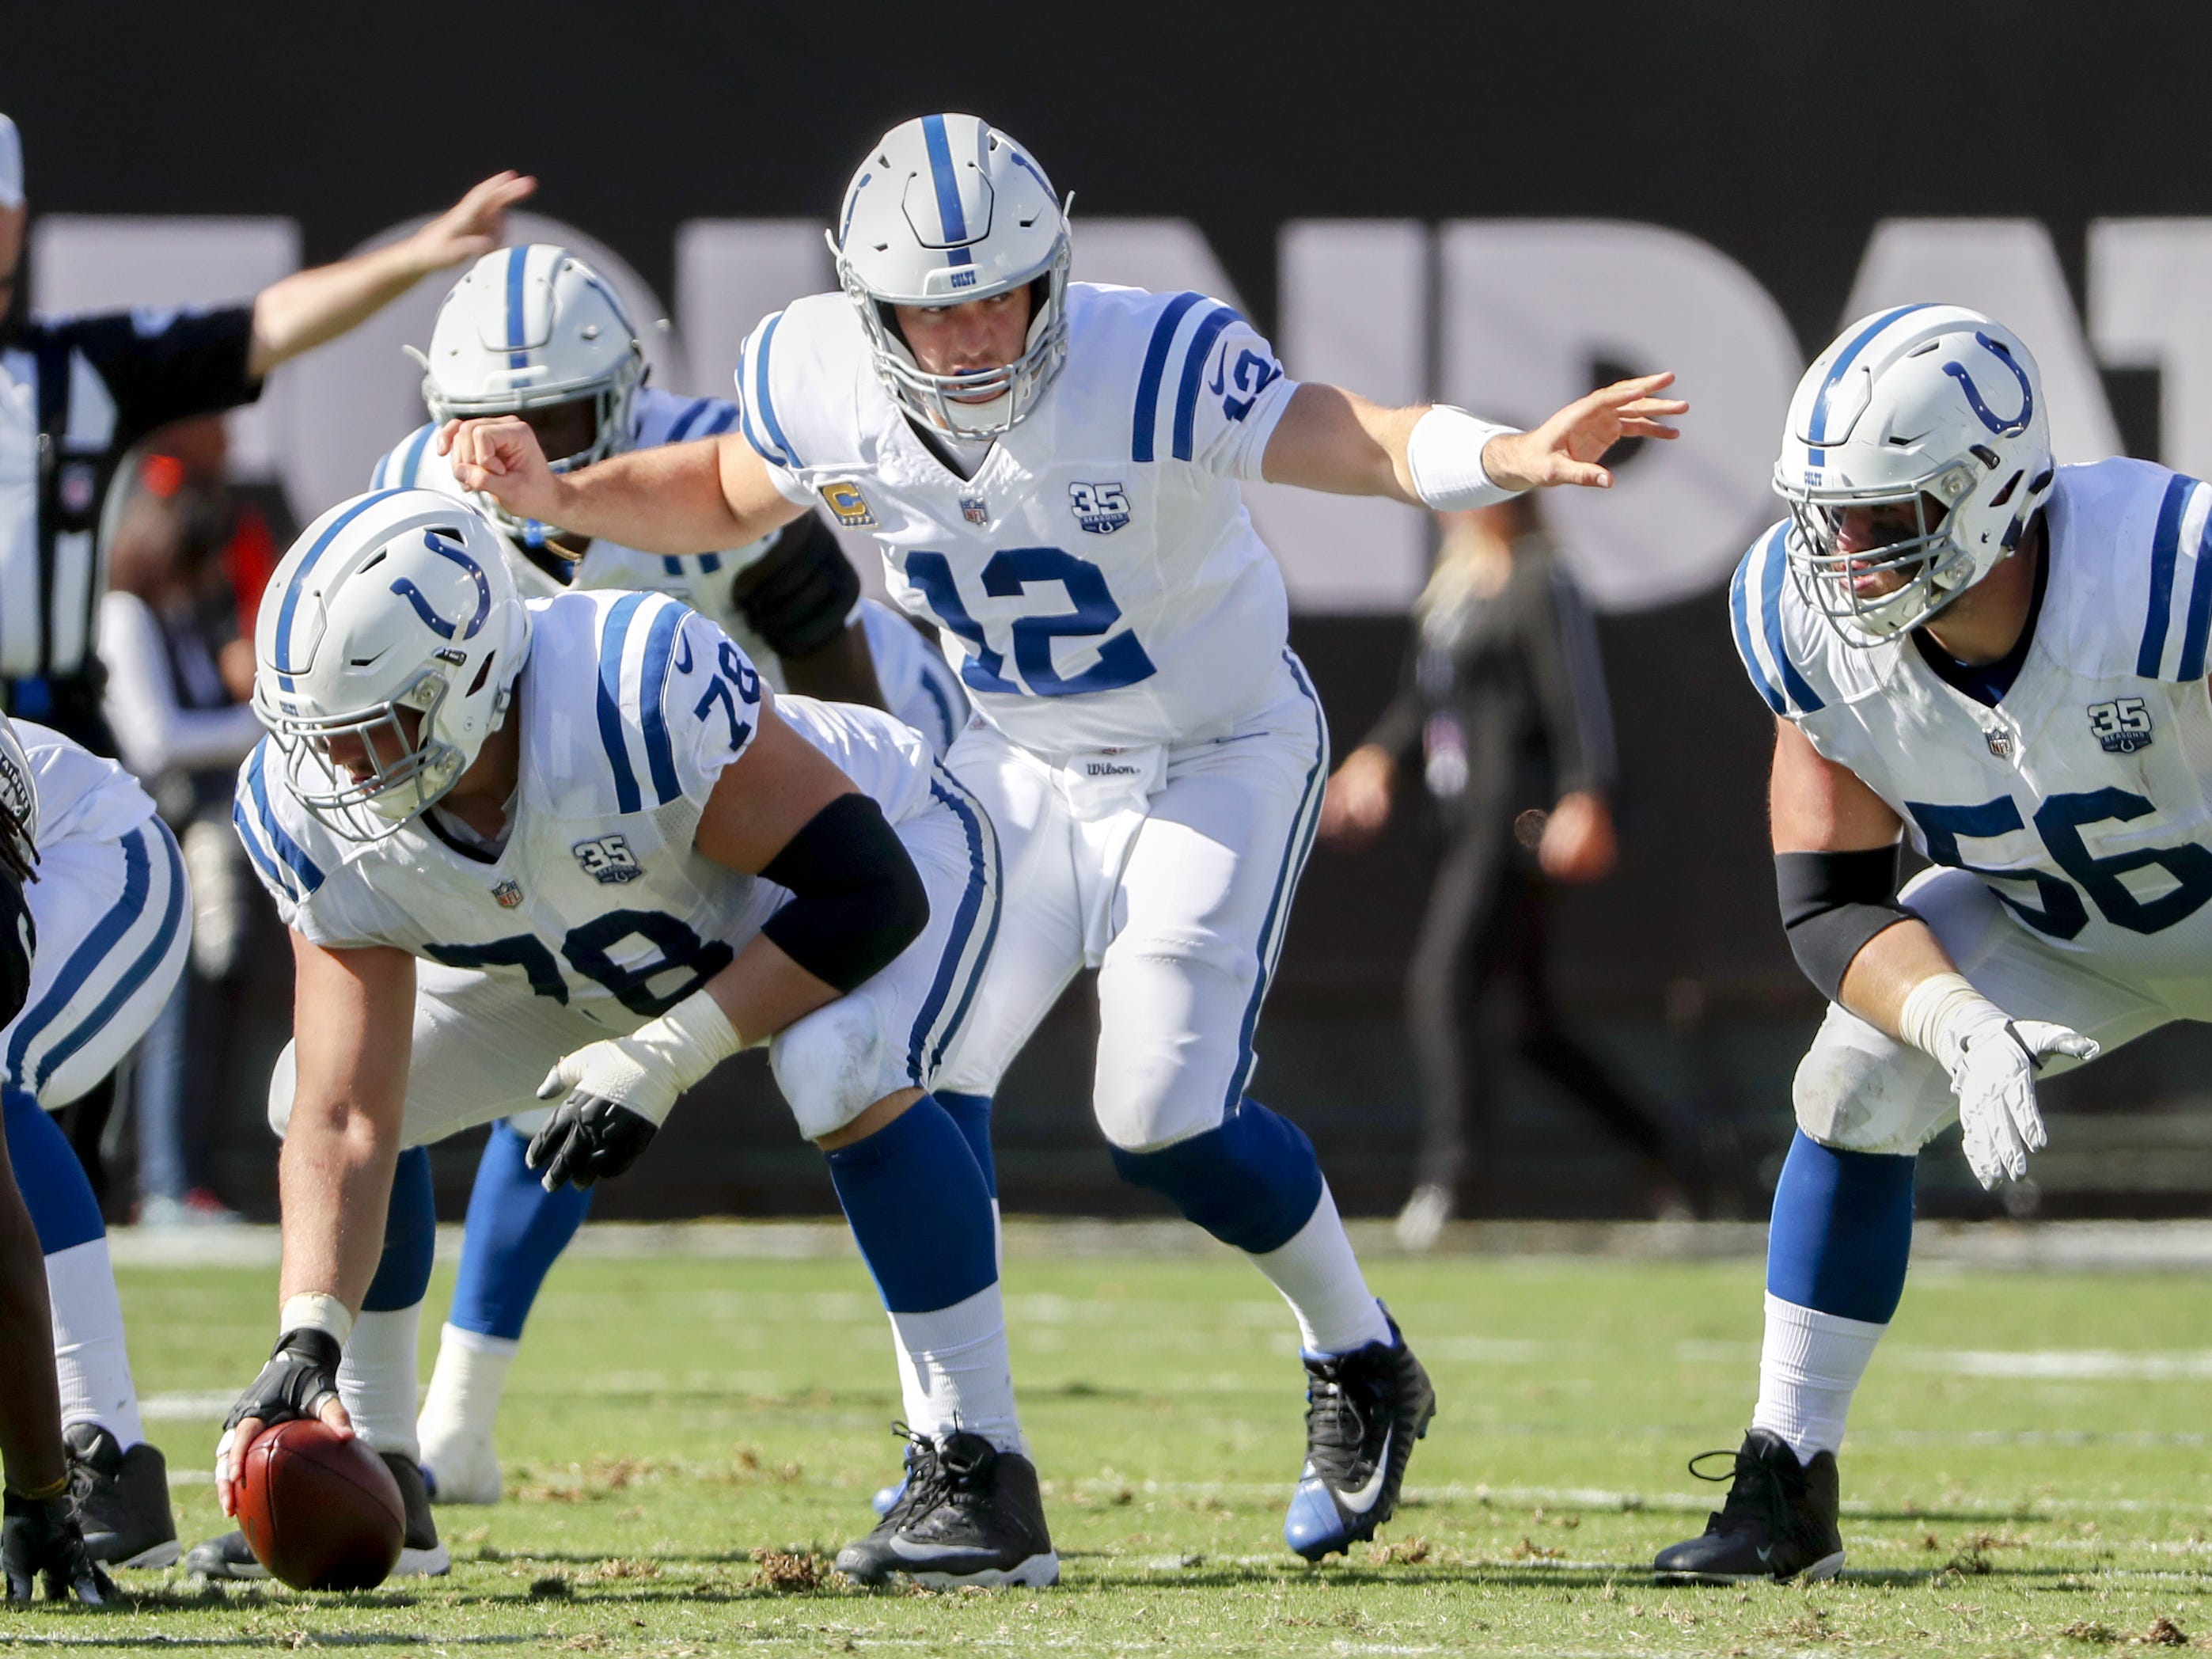 NFL Week 10 picks: Colts, Jaguars look like a tight matchup